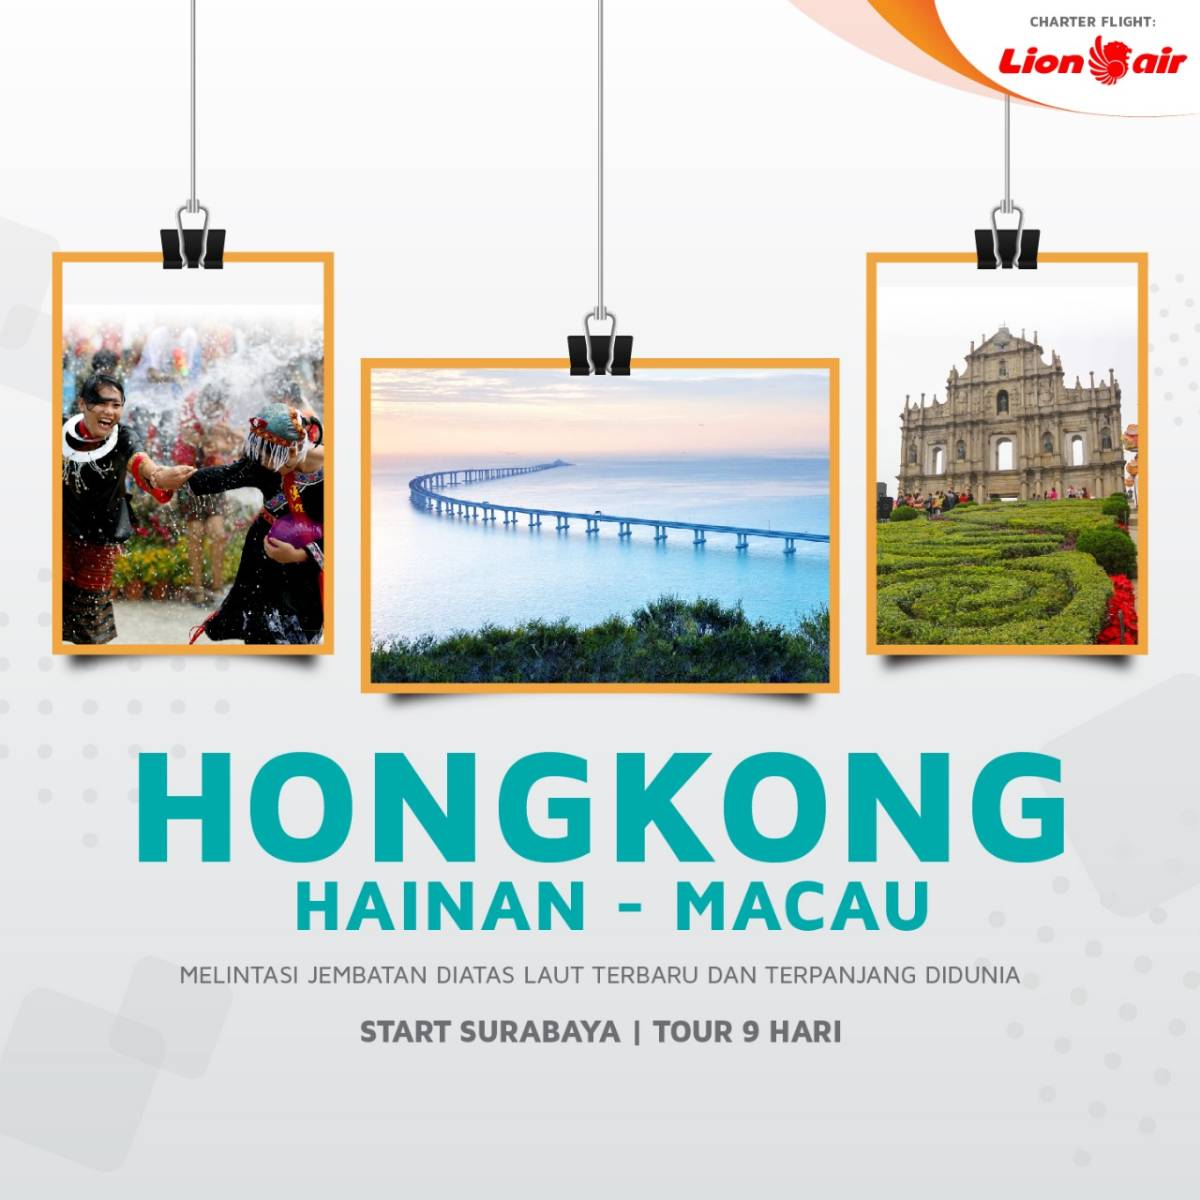 CHARTER FLIGHT TOUR HONGKONG + MACAU + HAINAN - STARTING SURABAYA